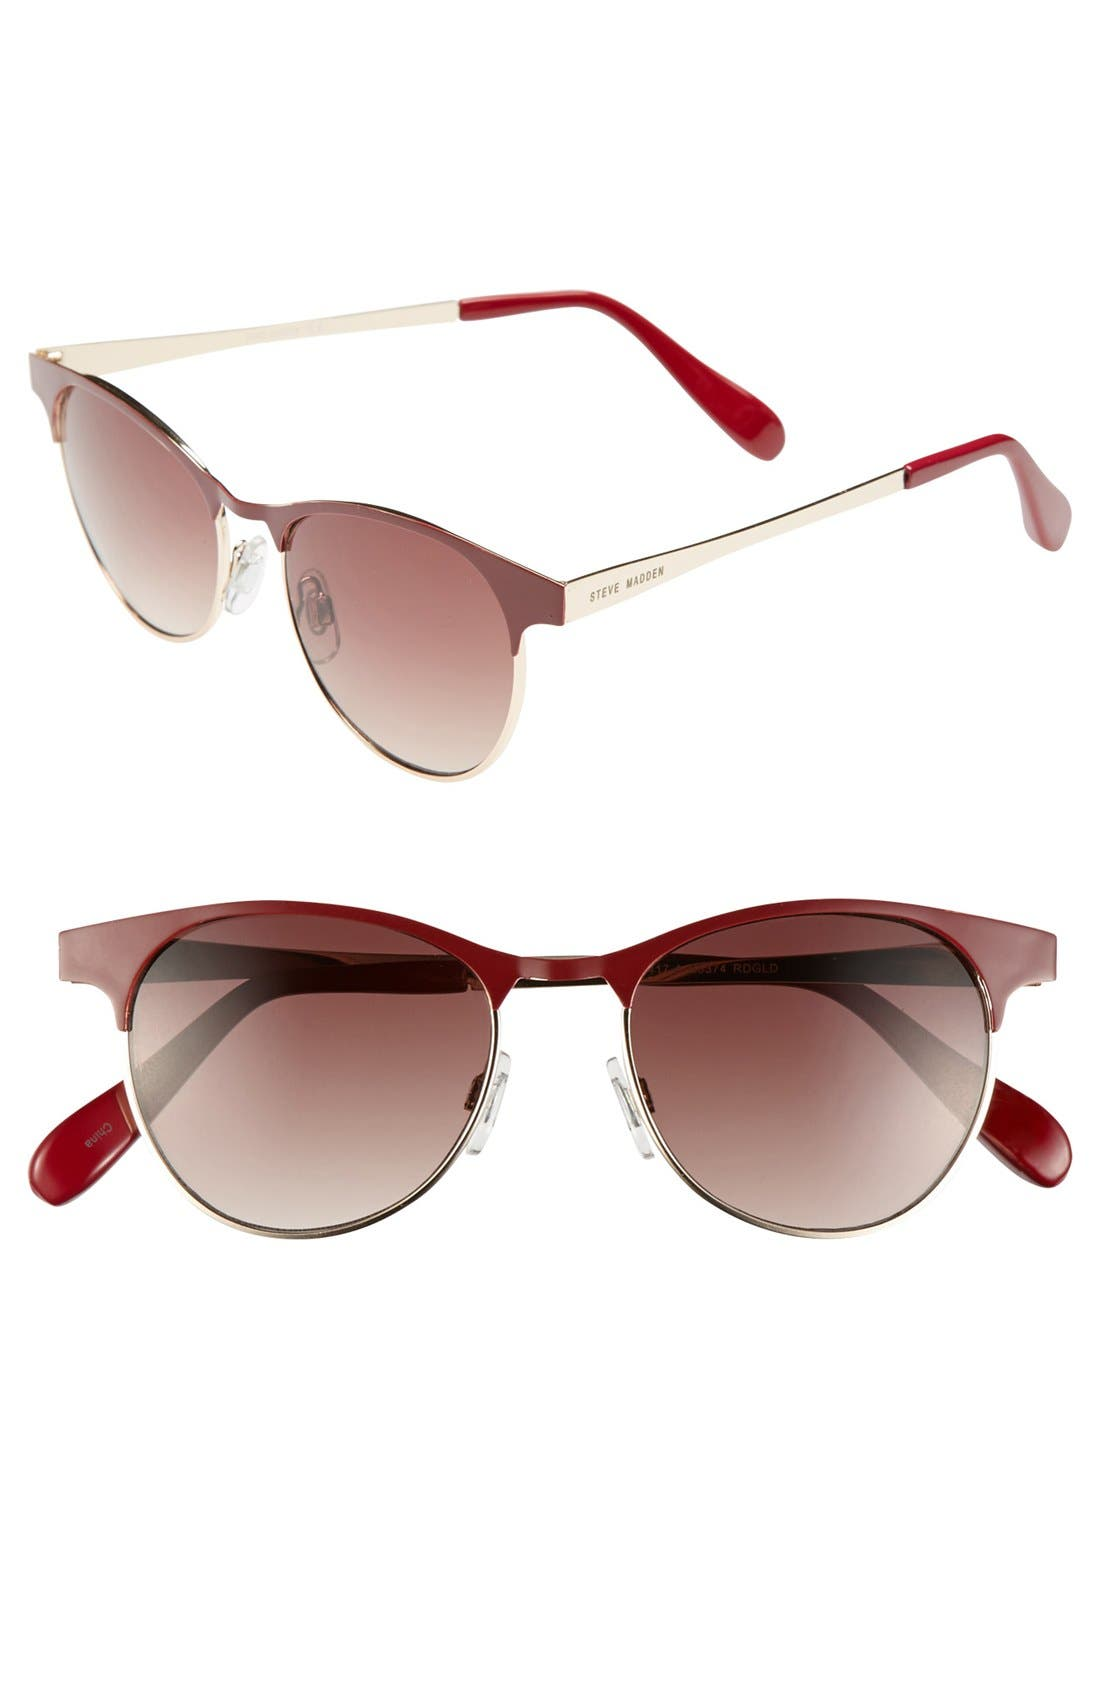 Main Image - Steve Madden 49mm Retro Sunglasses